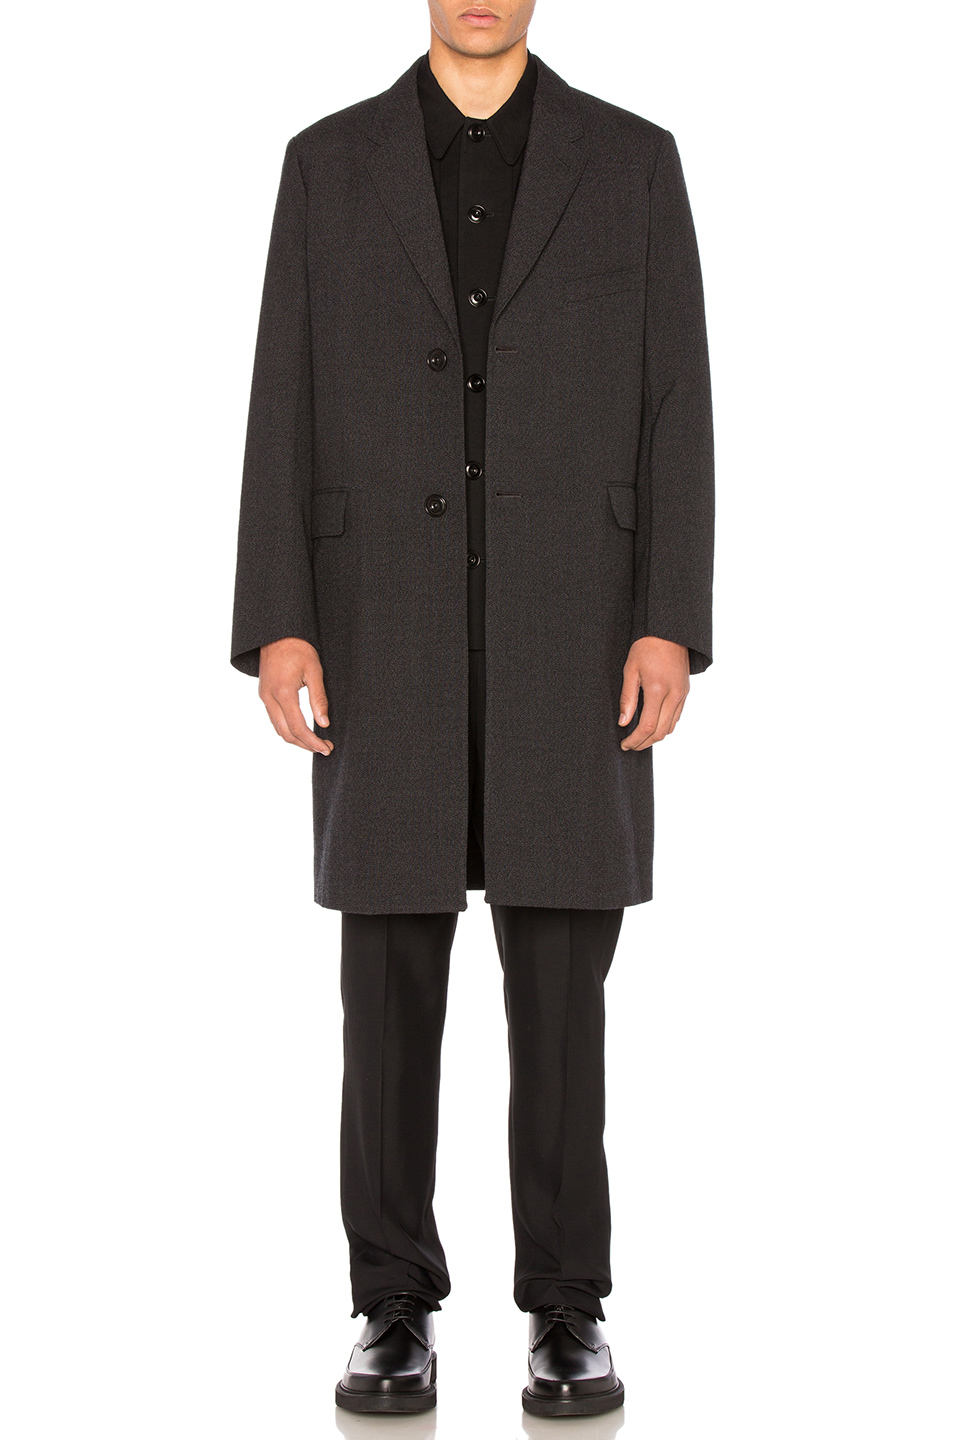 Lemaire Wool Suit Coat in Black